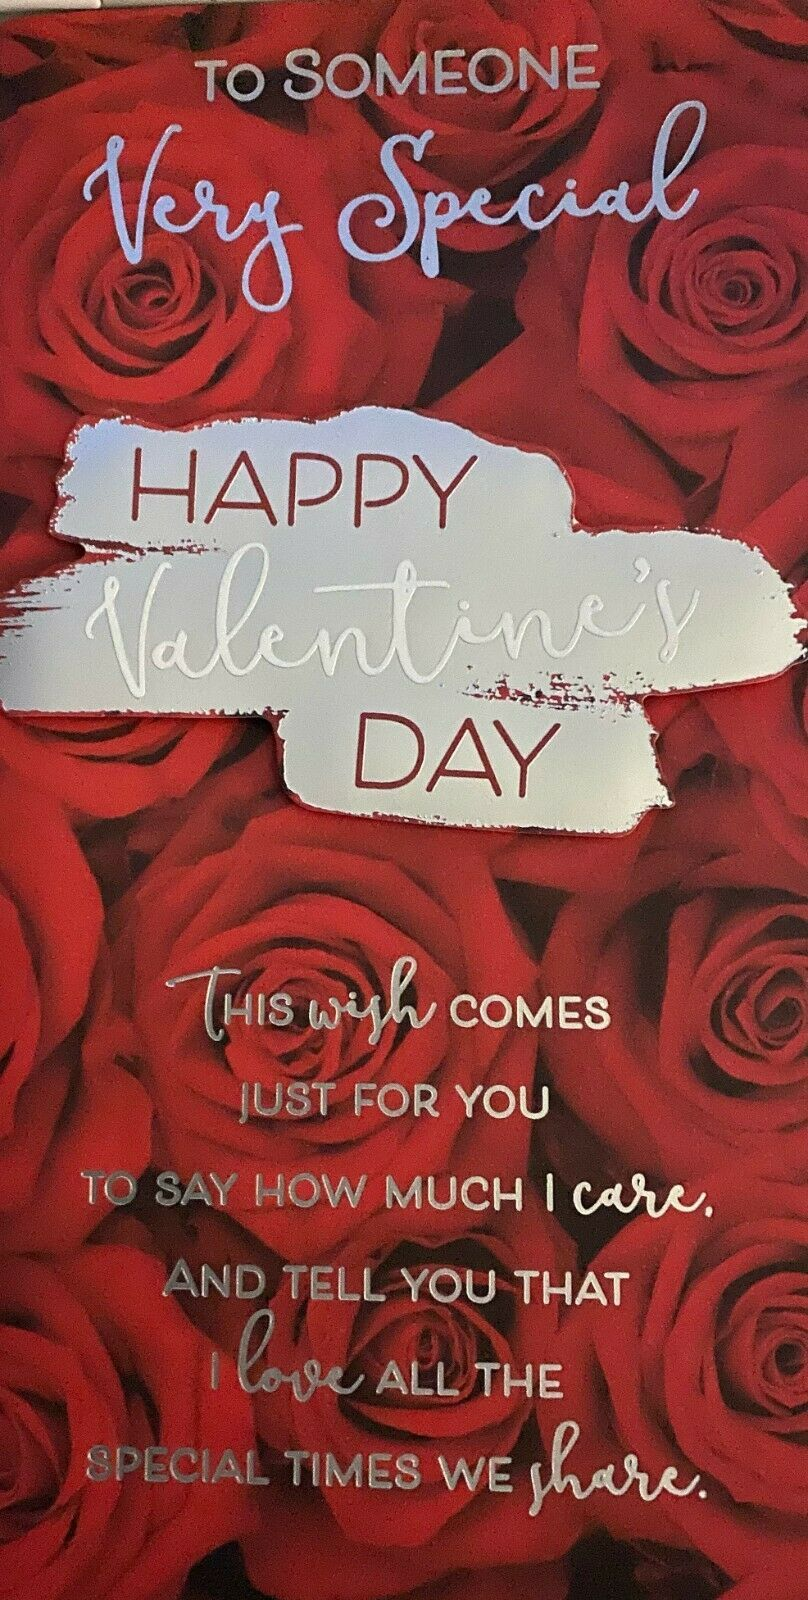 Valentine's Day Card To Someone Very Special - Happy Valentine's Day - Rose